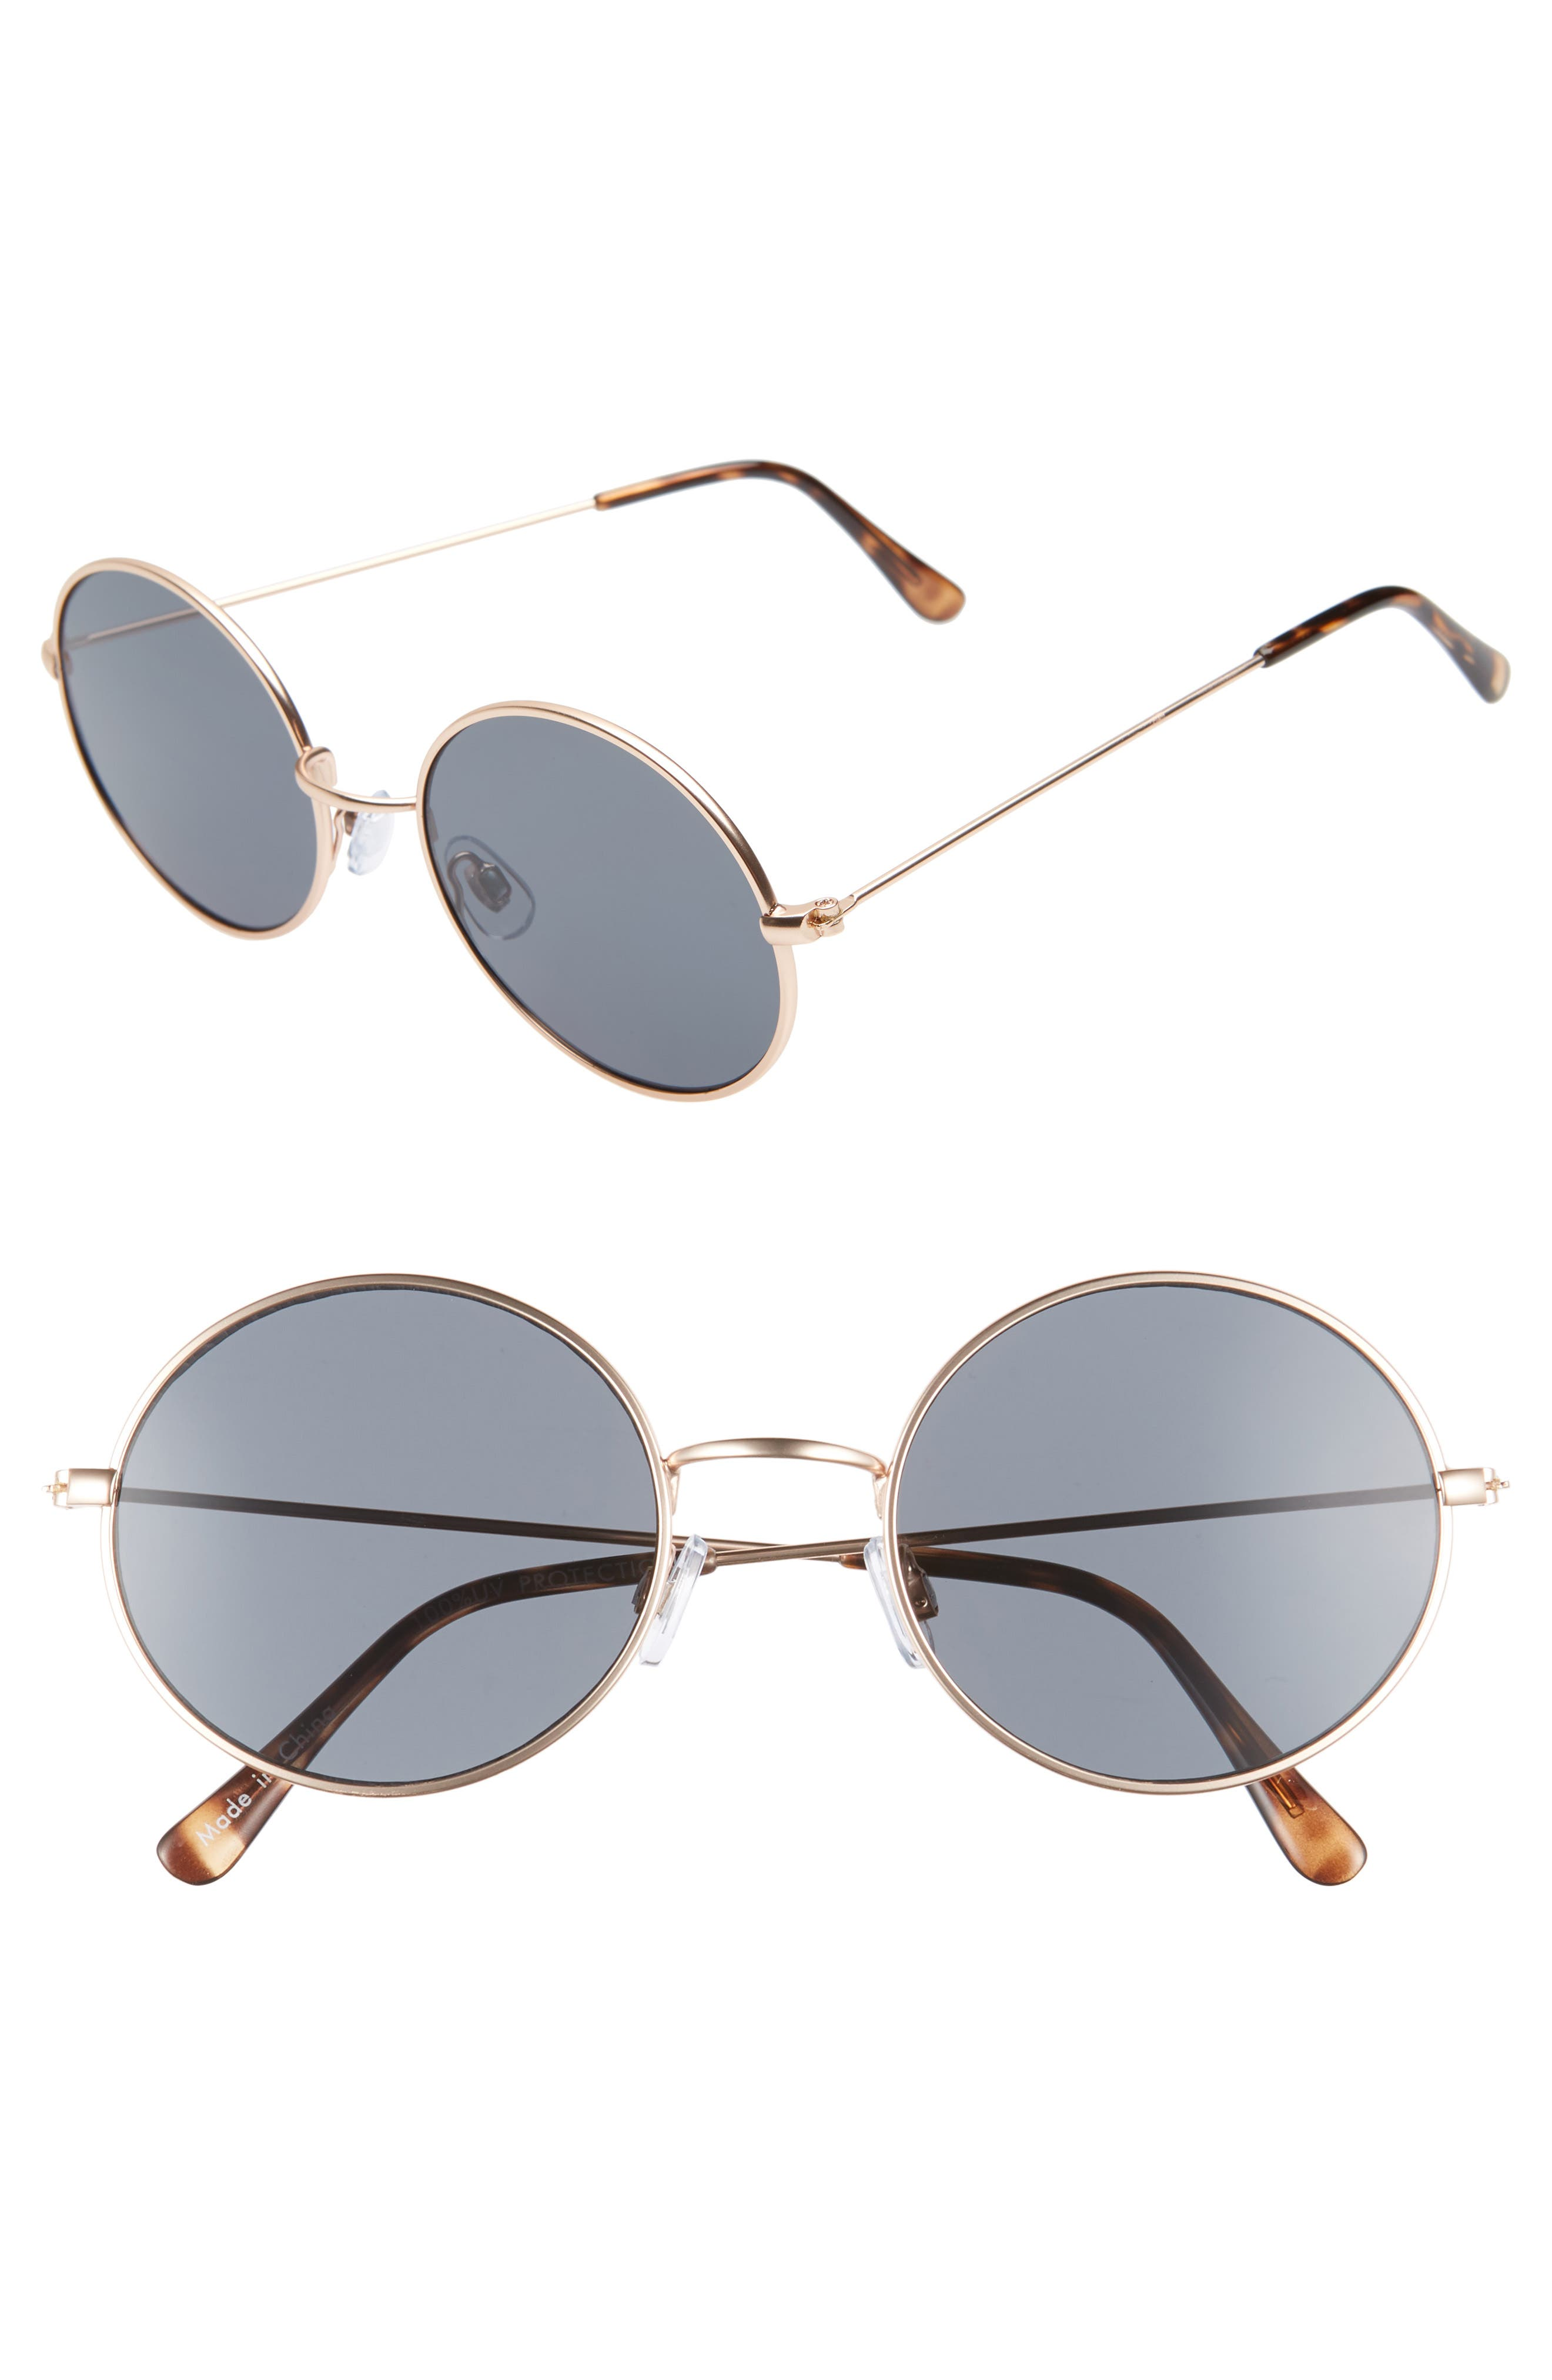 53mm Flat Round Sunglasses,                         Main,                         color, GOLD/ BLACK